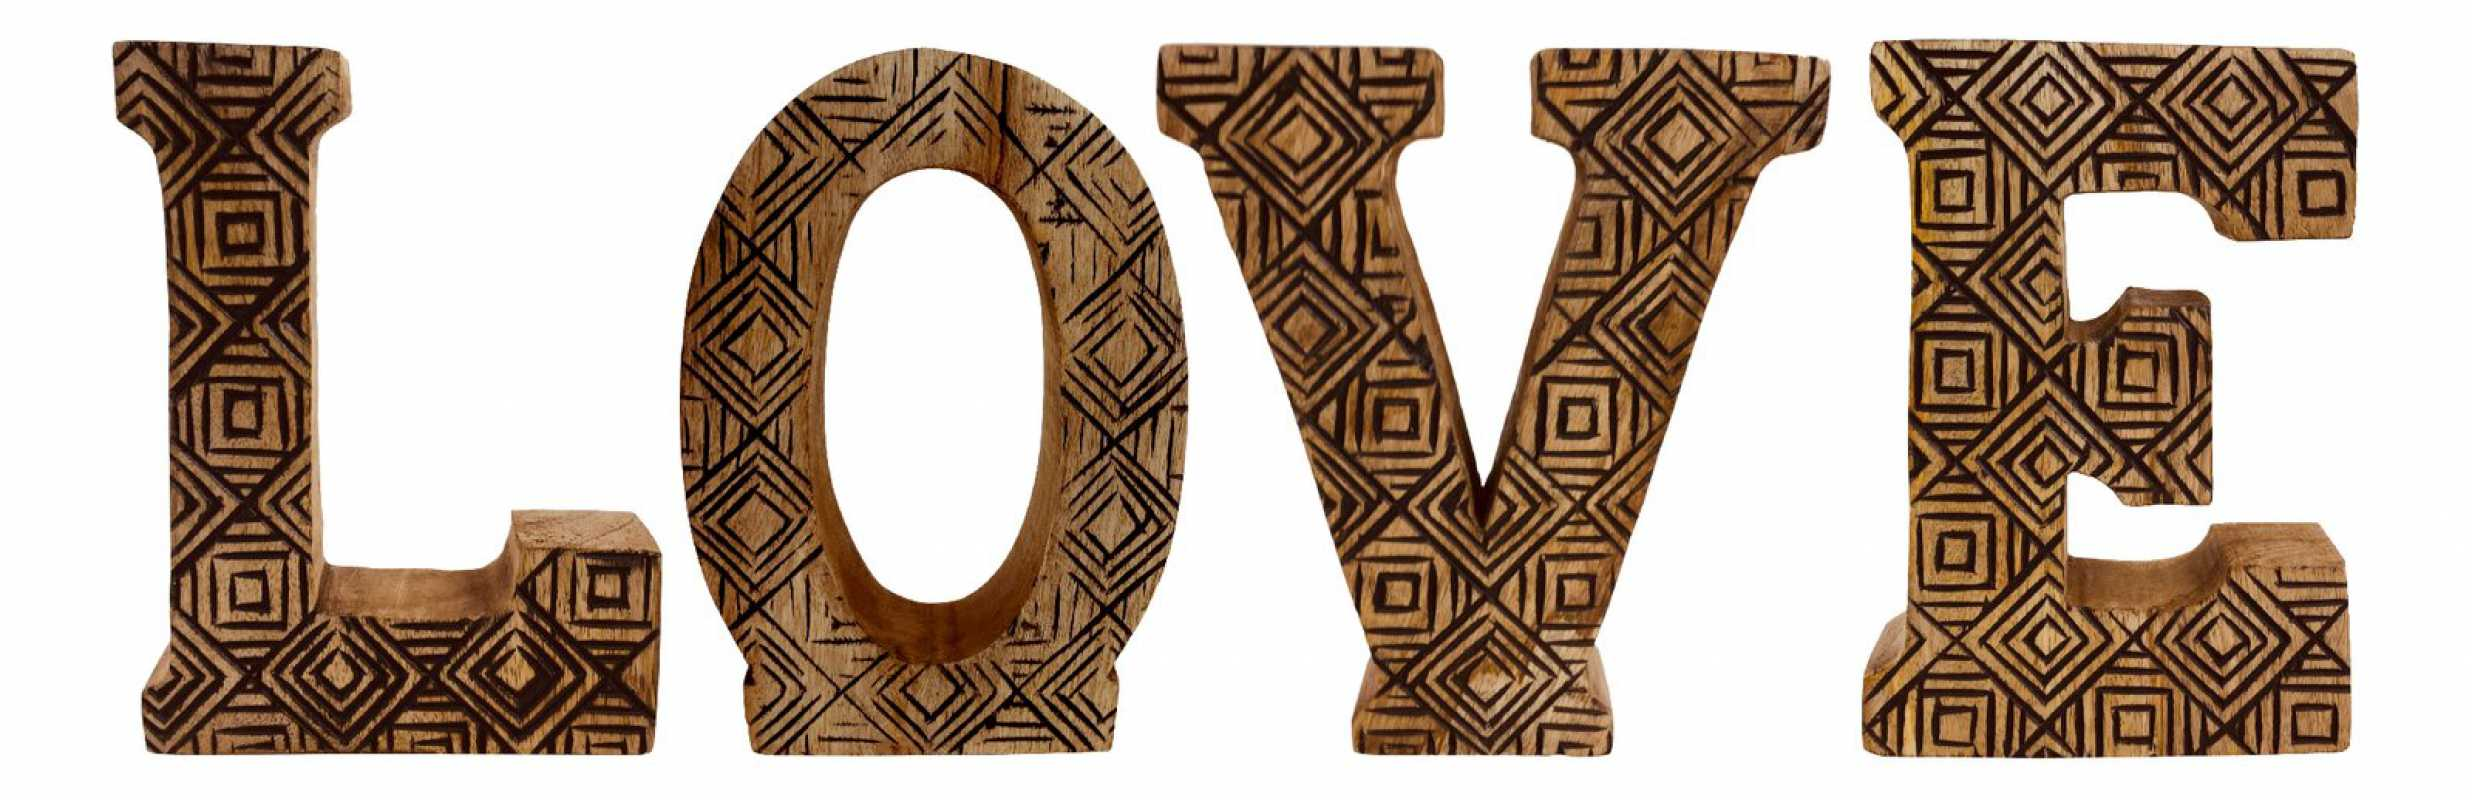 Hand Carved Wooden Geometric Letters Love